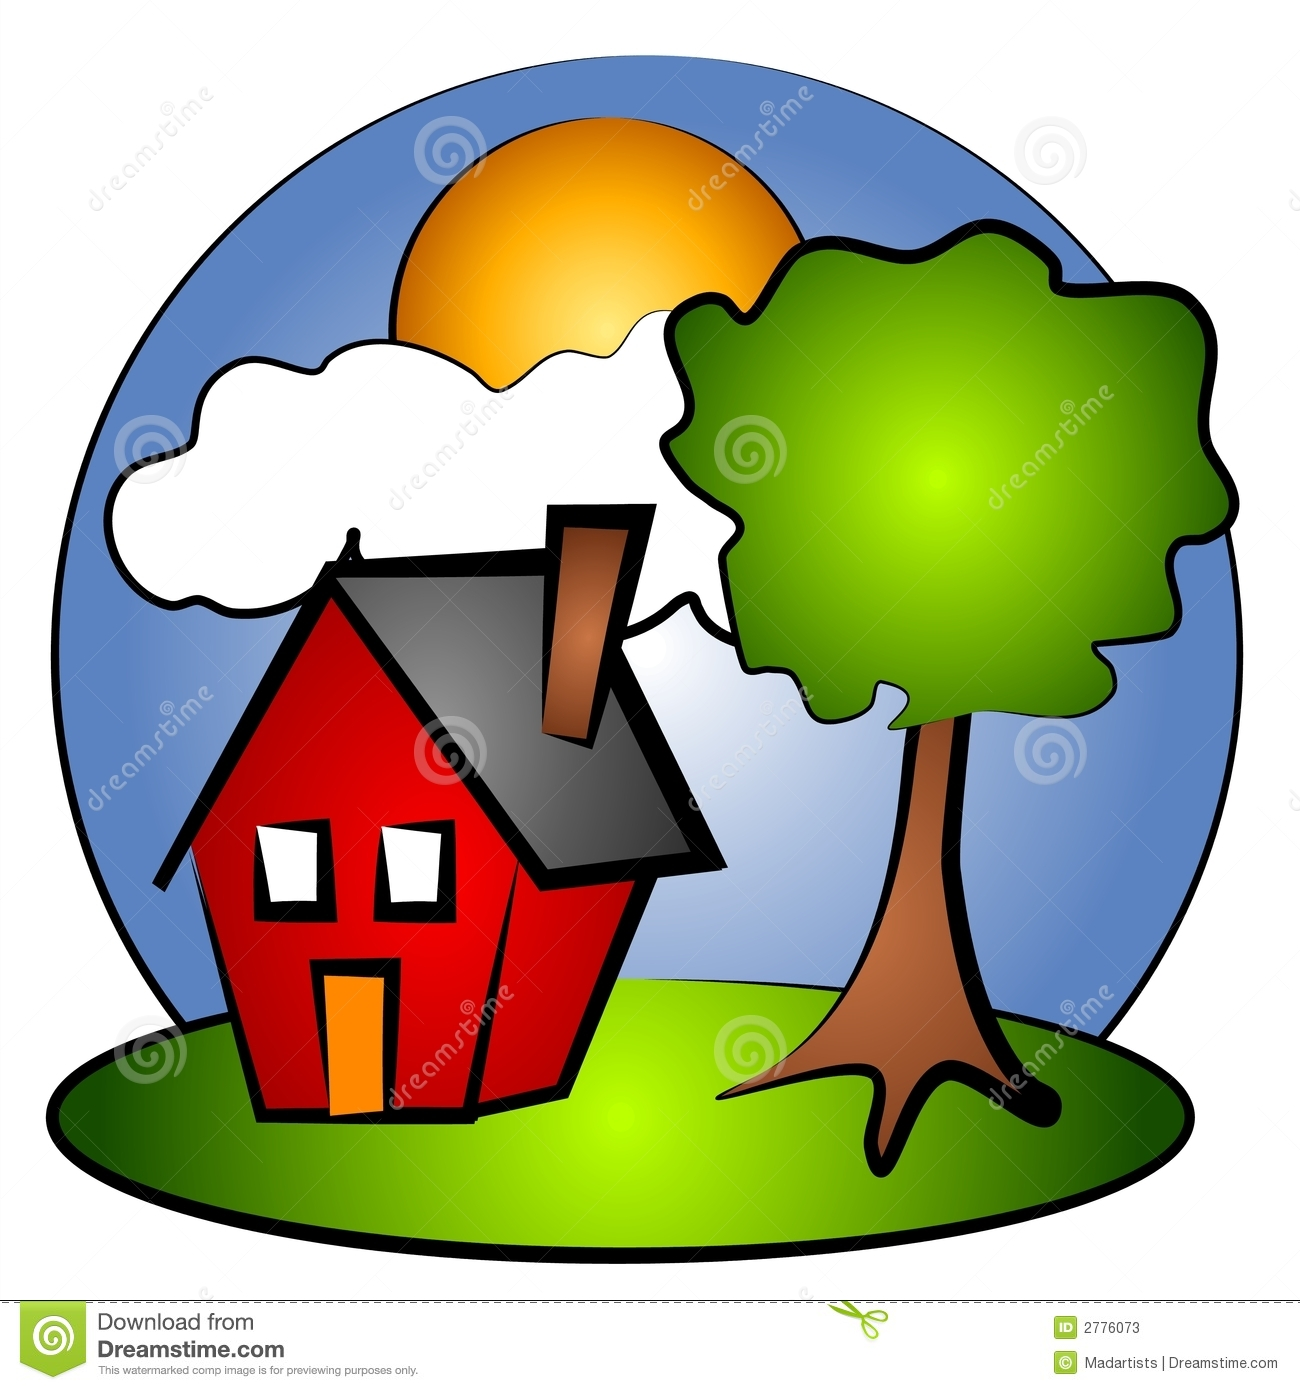 22 new house clipart free cliparts that you can download to.